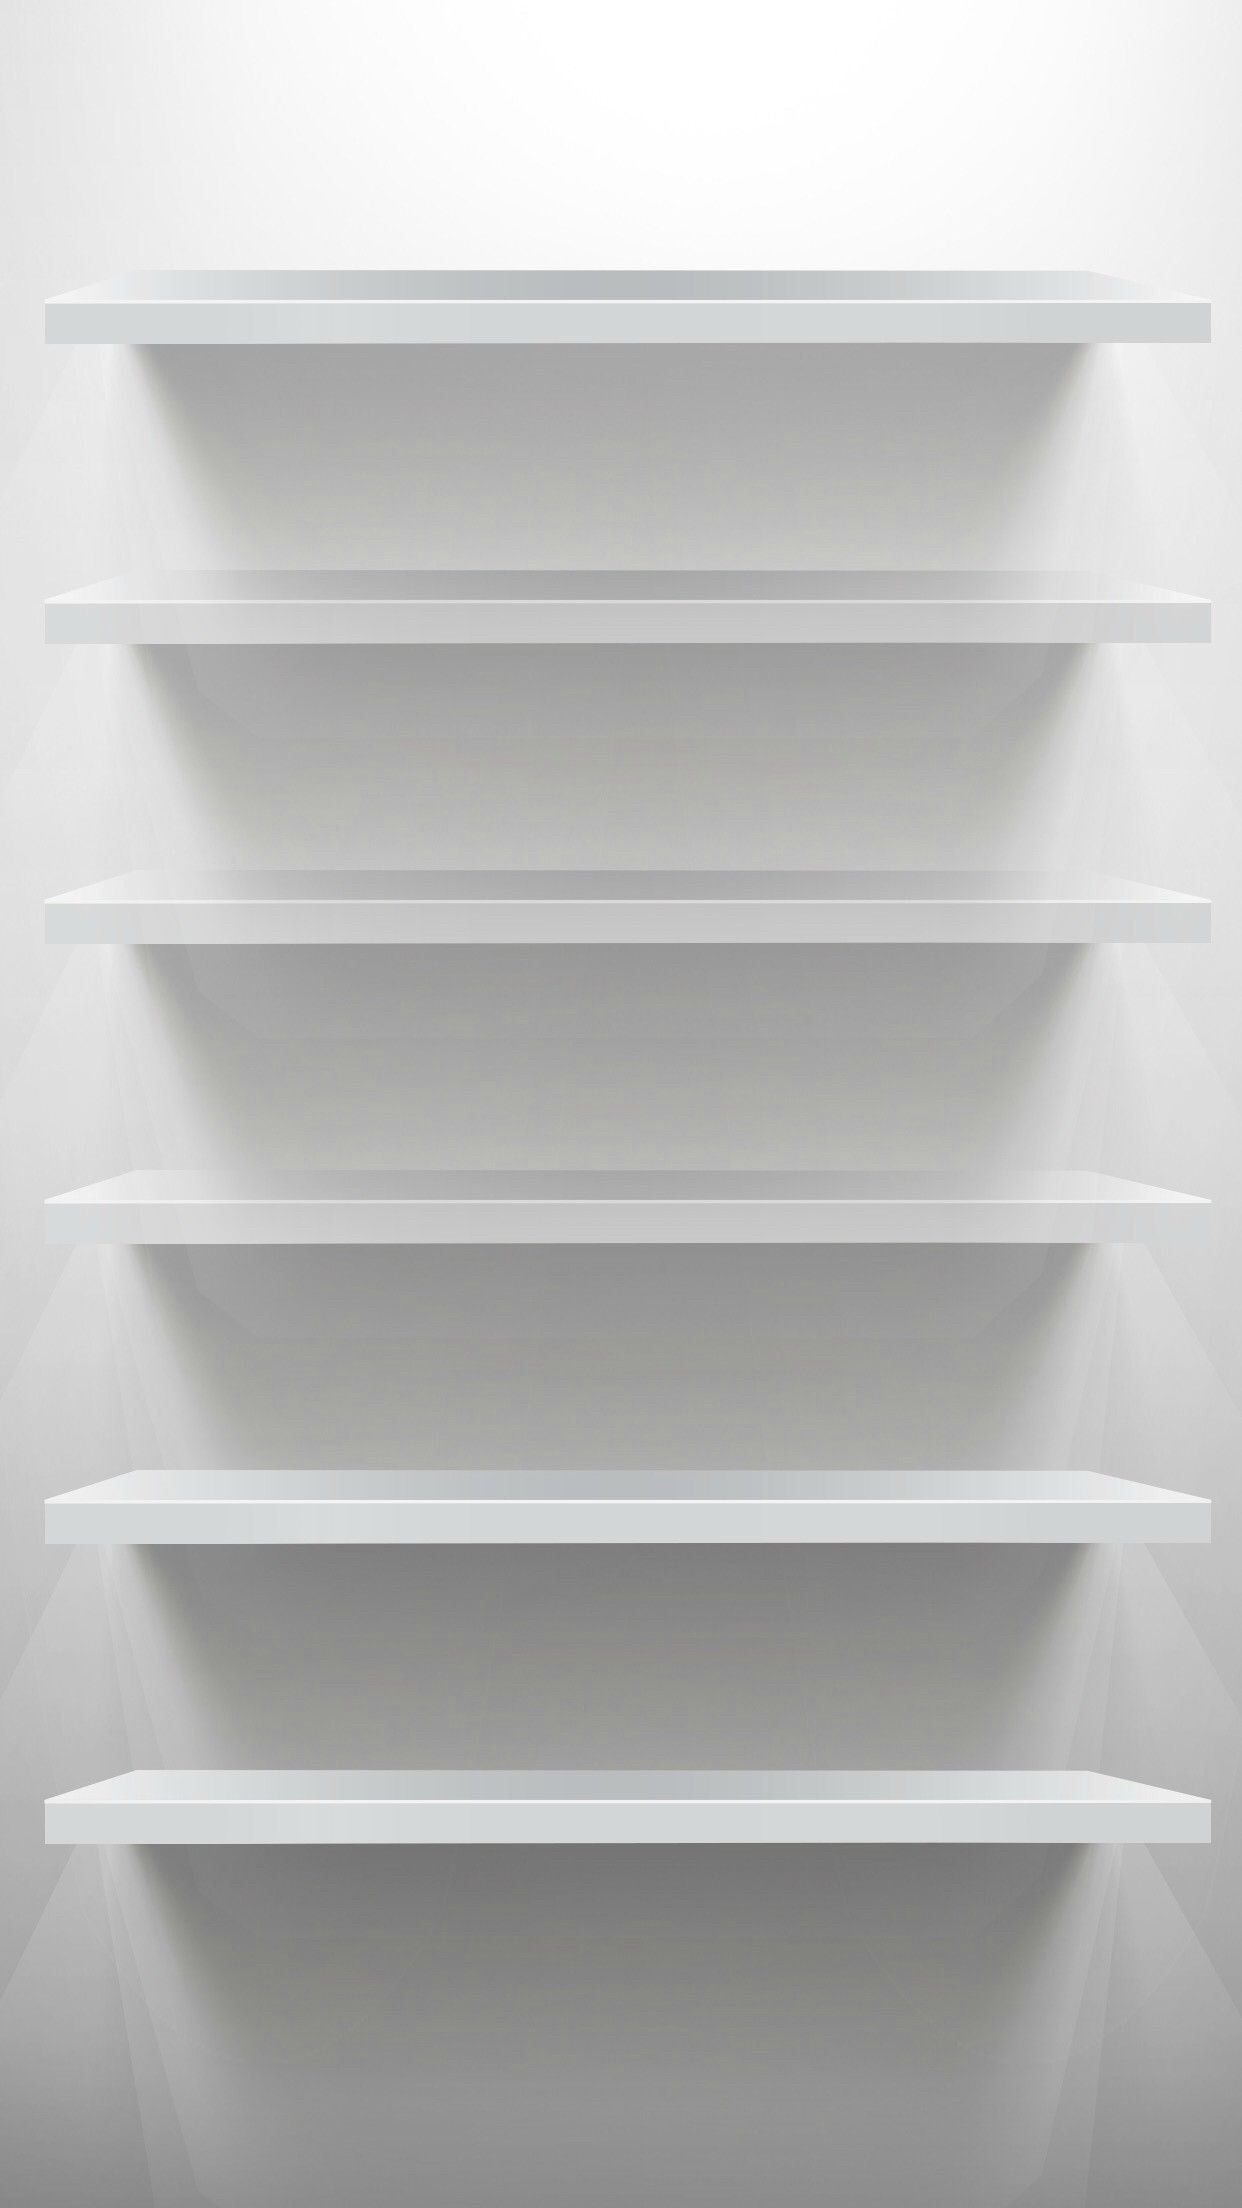 10 Creative Shelves Wallpapers For The Iphone 6 Plus Iphone 7 Plus Wallpaper Wallpaper Shelves Homescreen Iphone